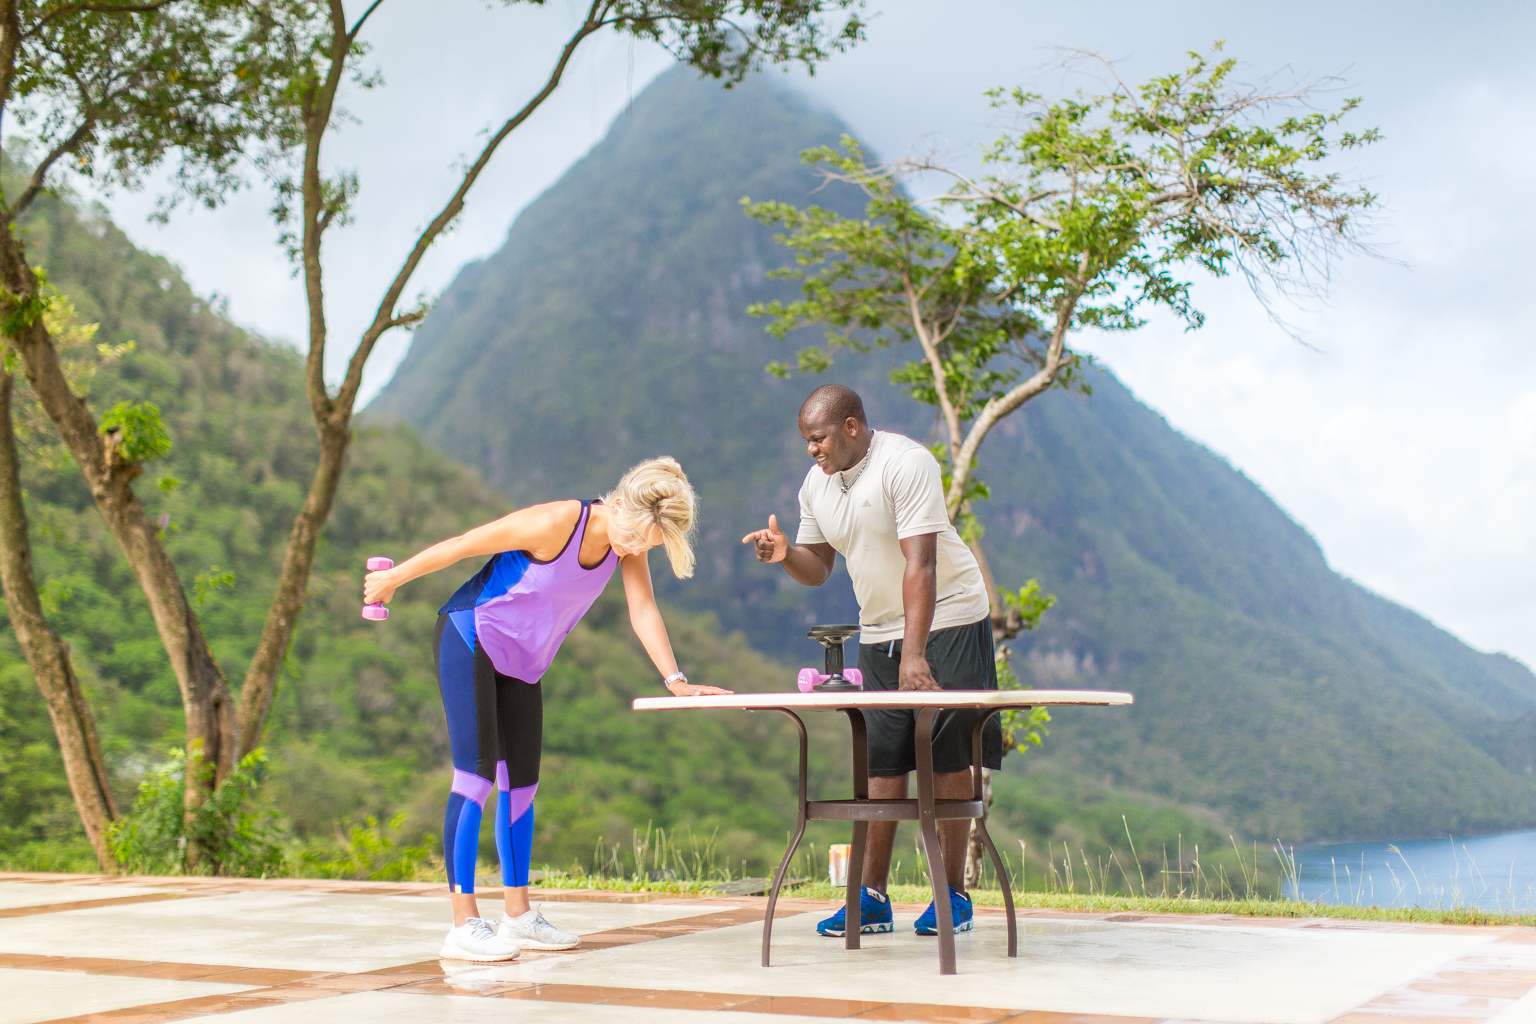 Fitness On Toast Faya Blog Girl Healthy Workout Viceroy Sugar Beach St Lucia Caribbean Hotel Holiday Luxury Resort Sun Travel-11